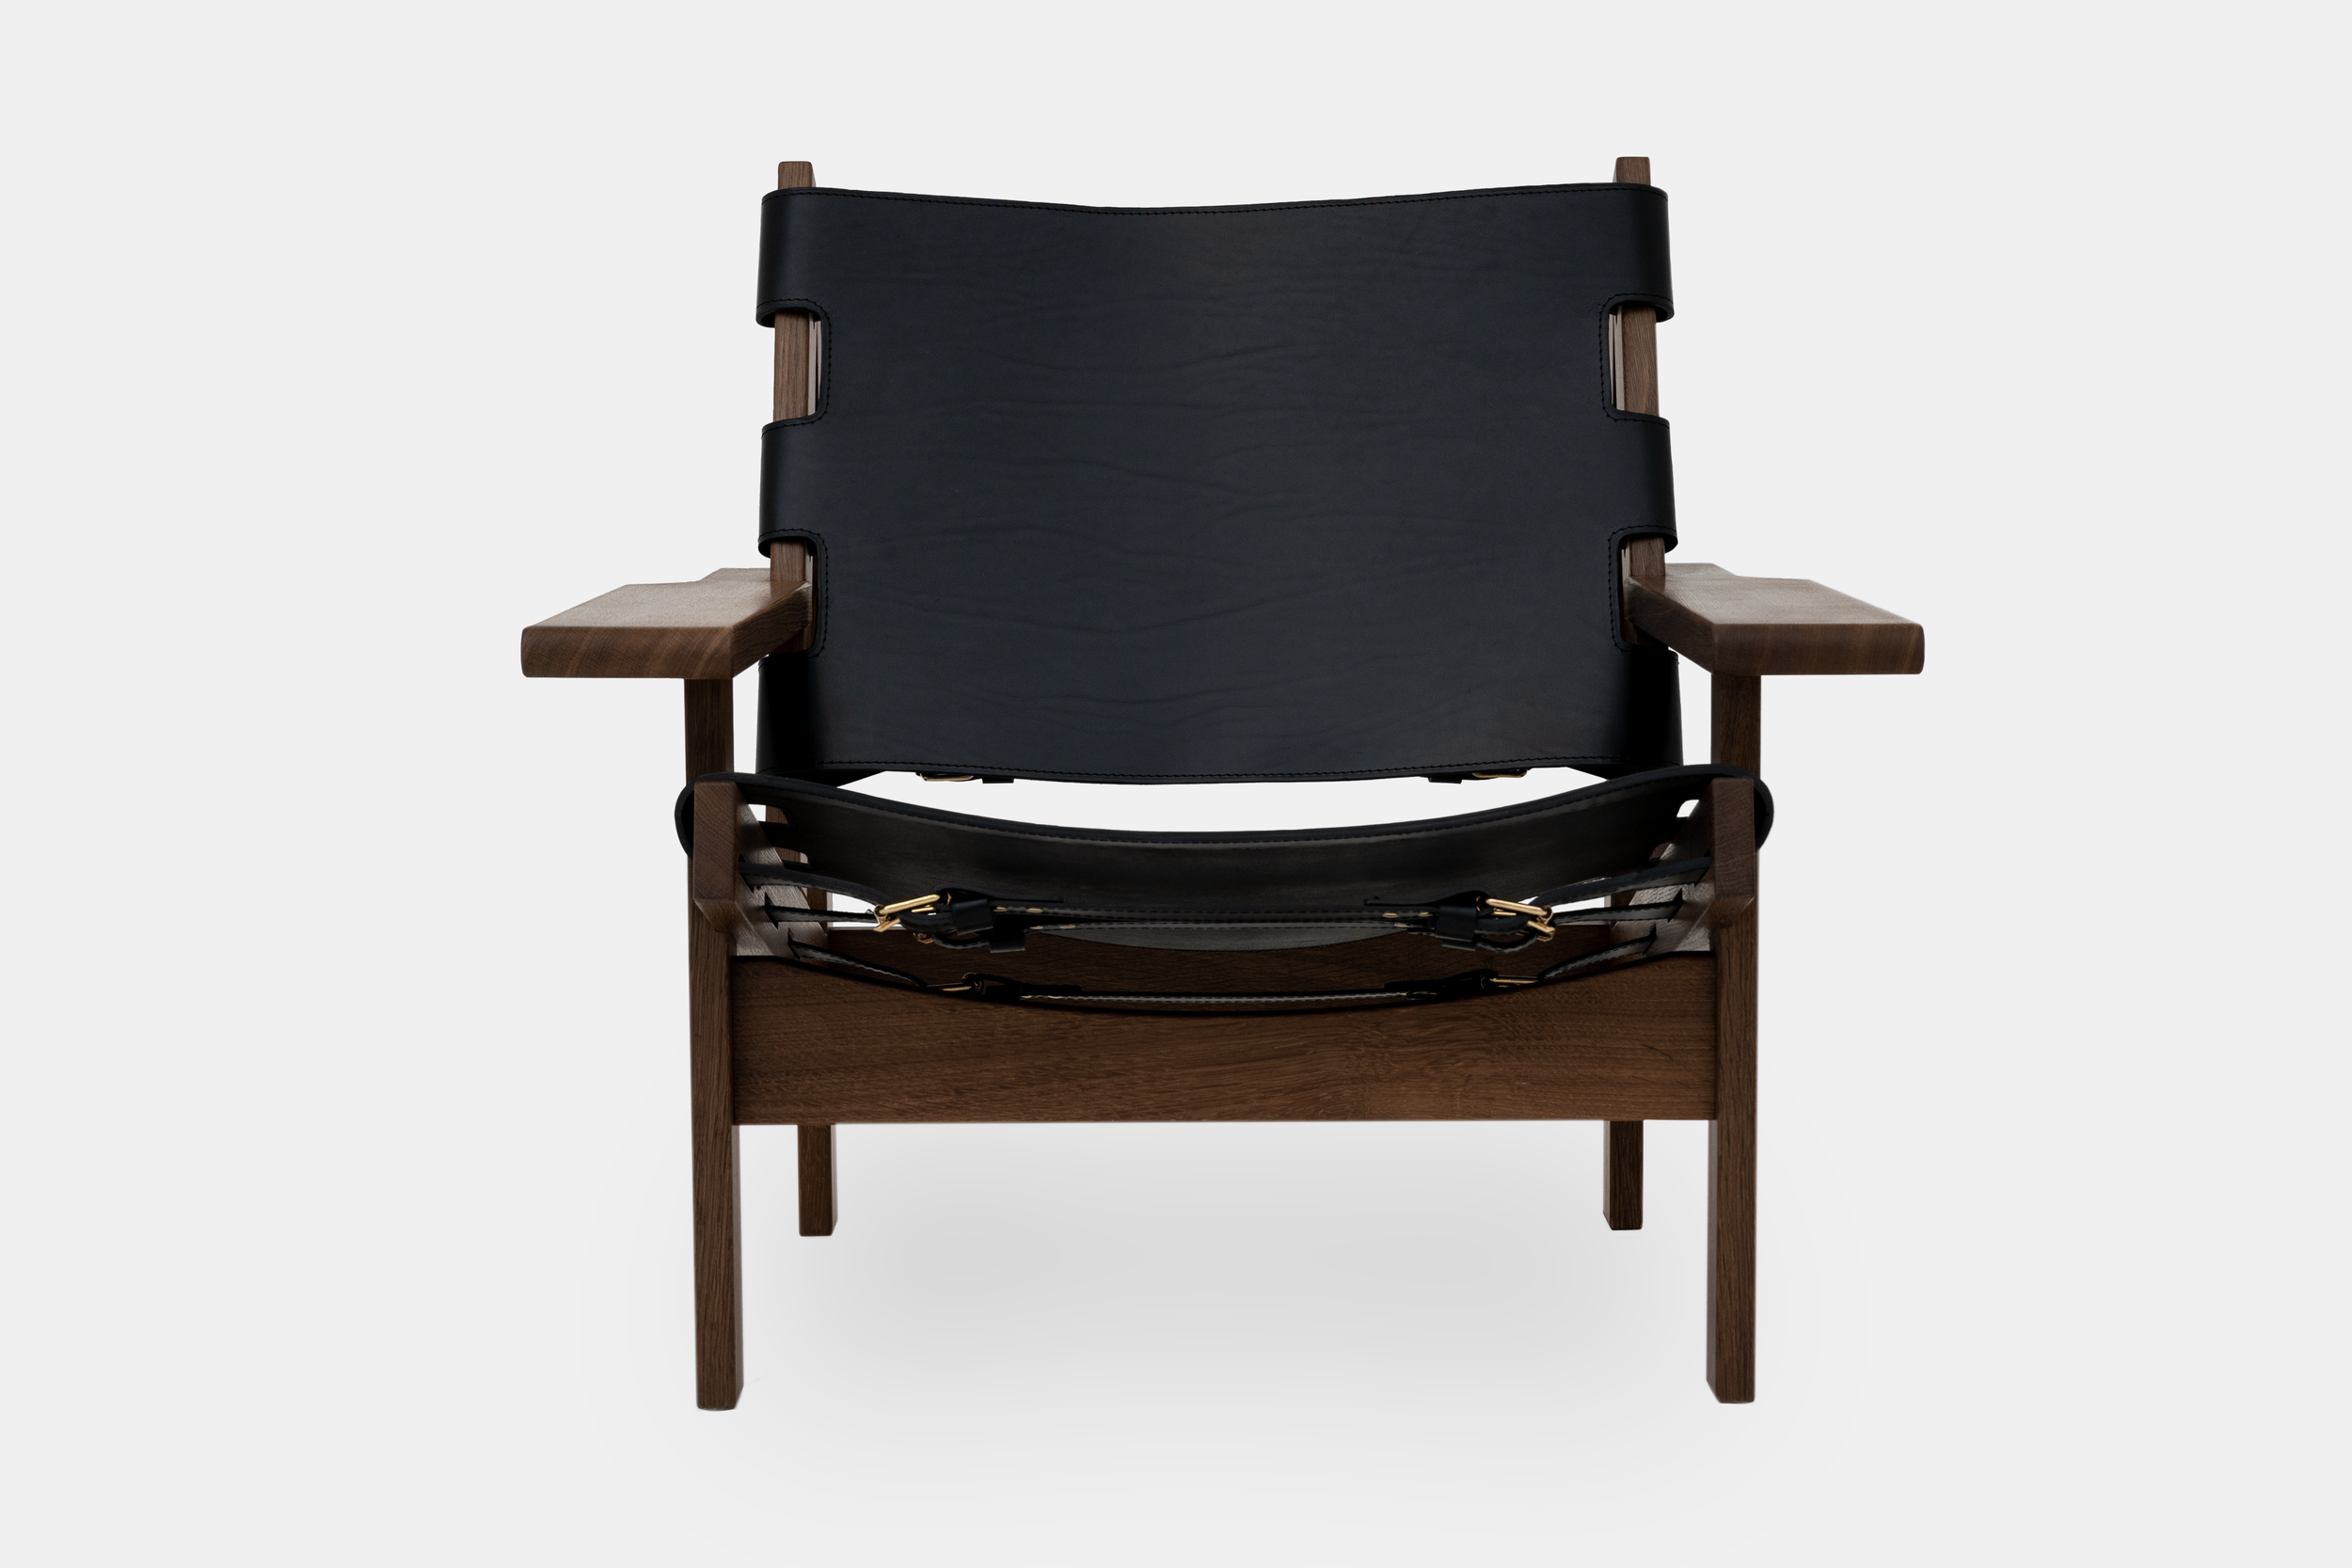 hunting-chair-black-smoked-oak-1.png